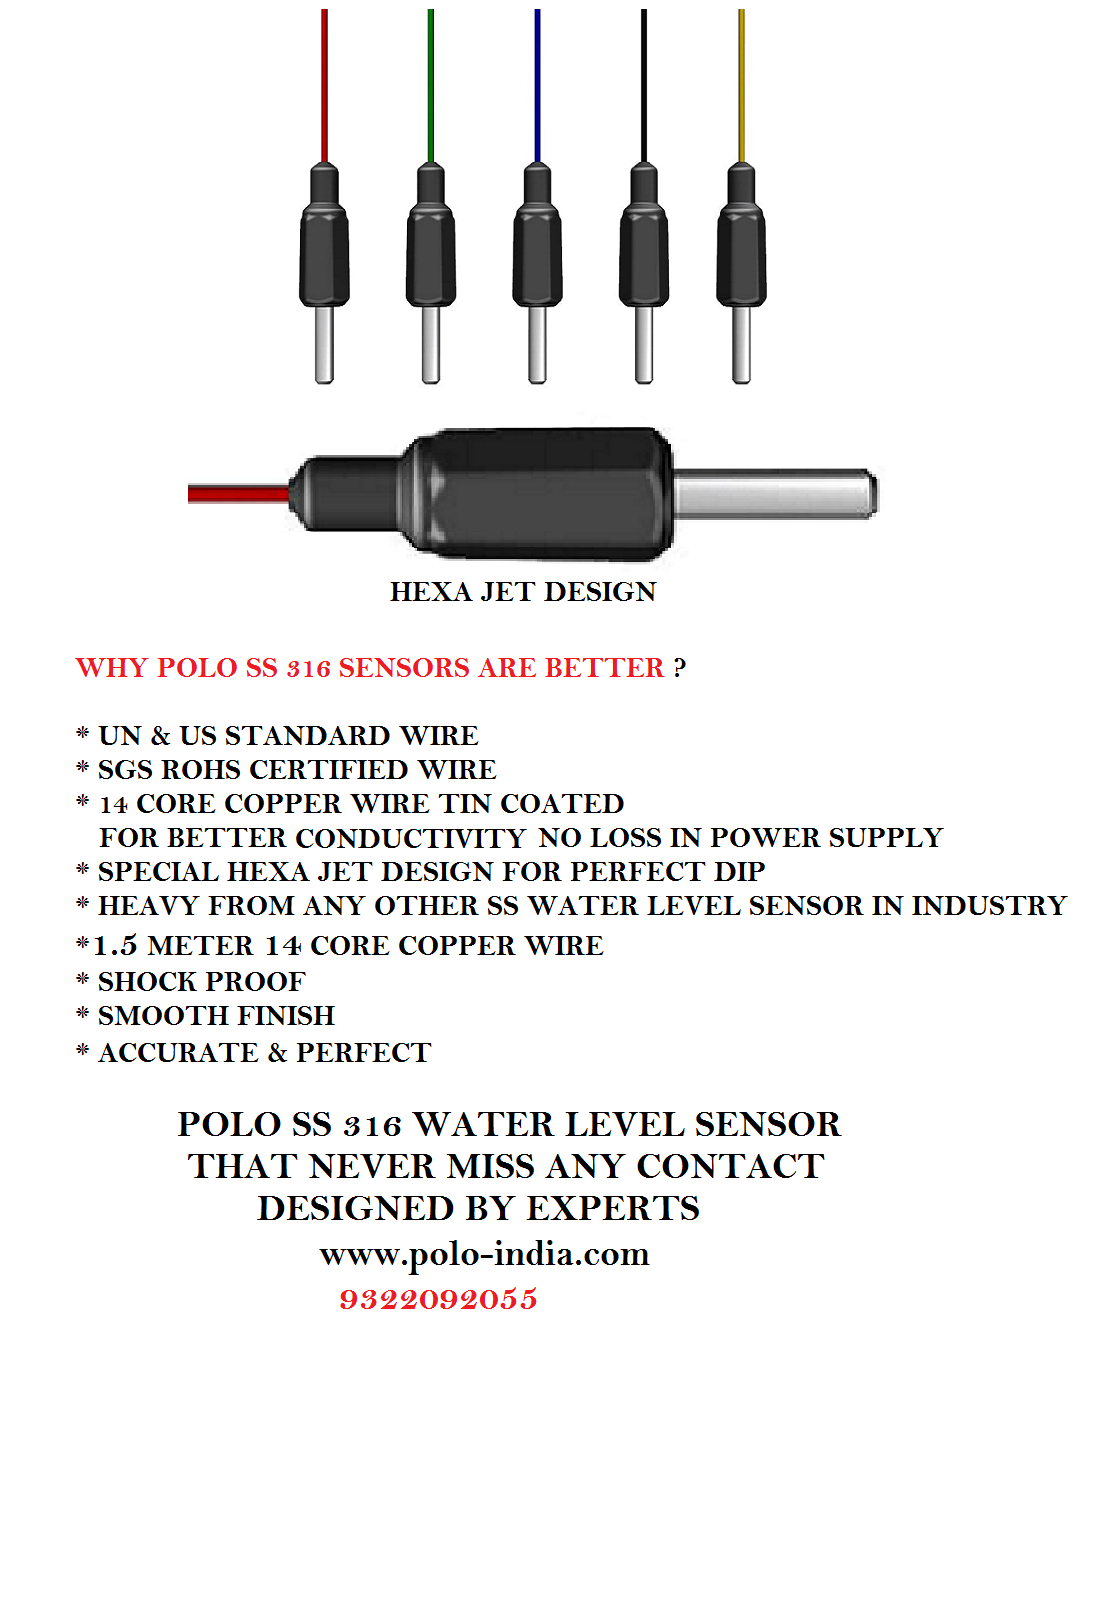 Water Level Controller Polo India